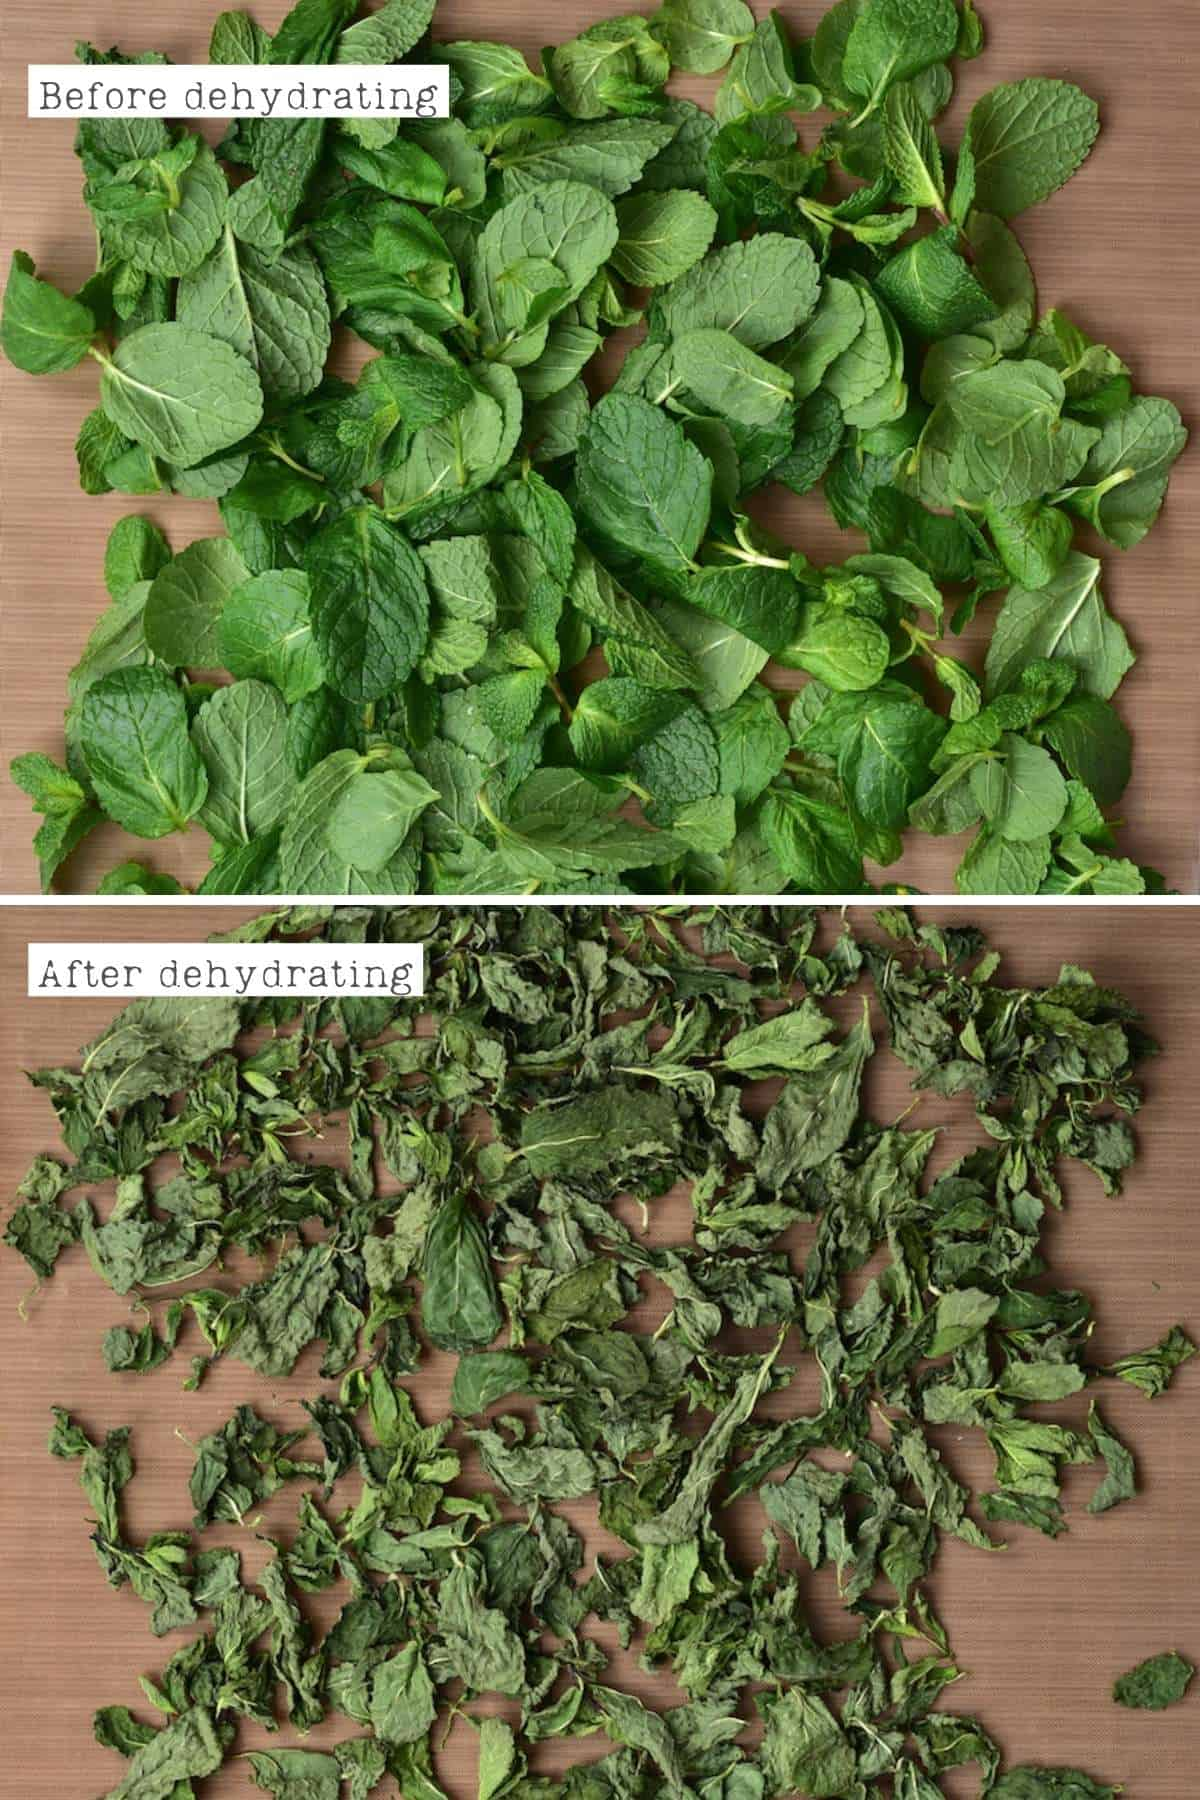 Before and after dehydrating mint leaves